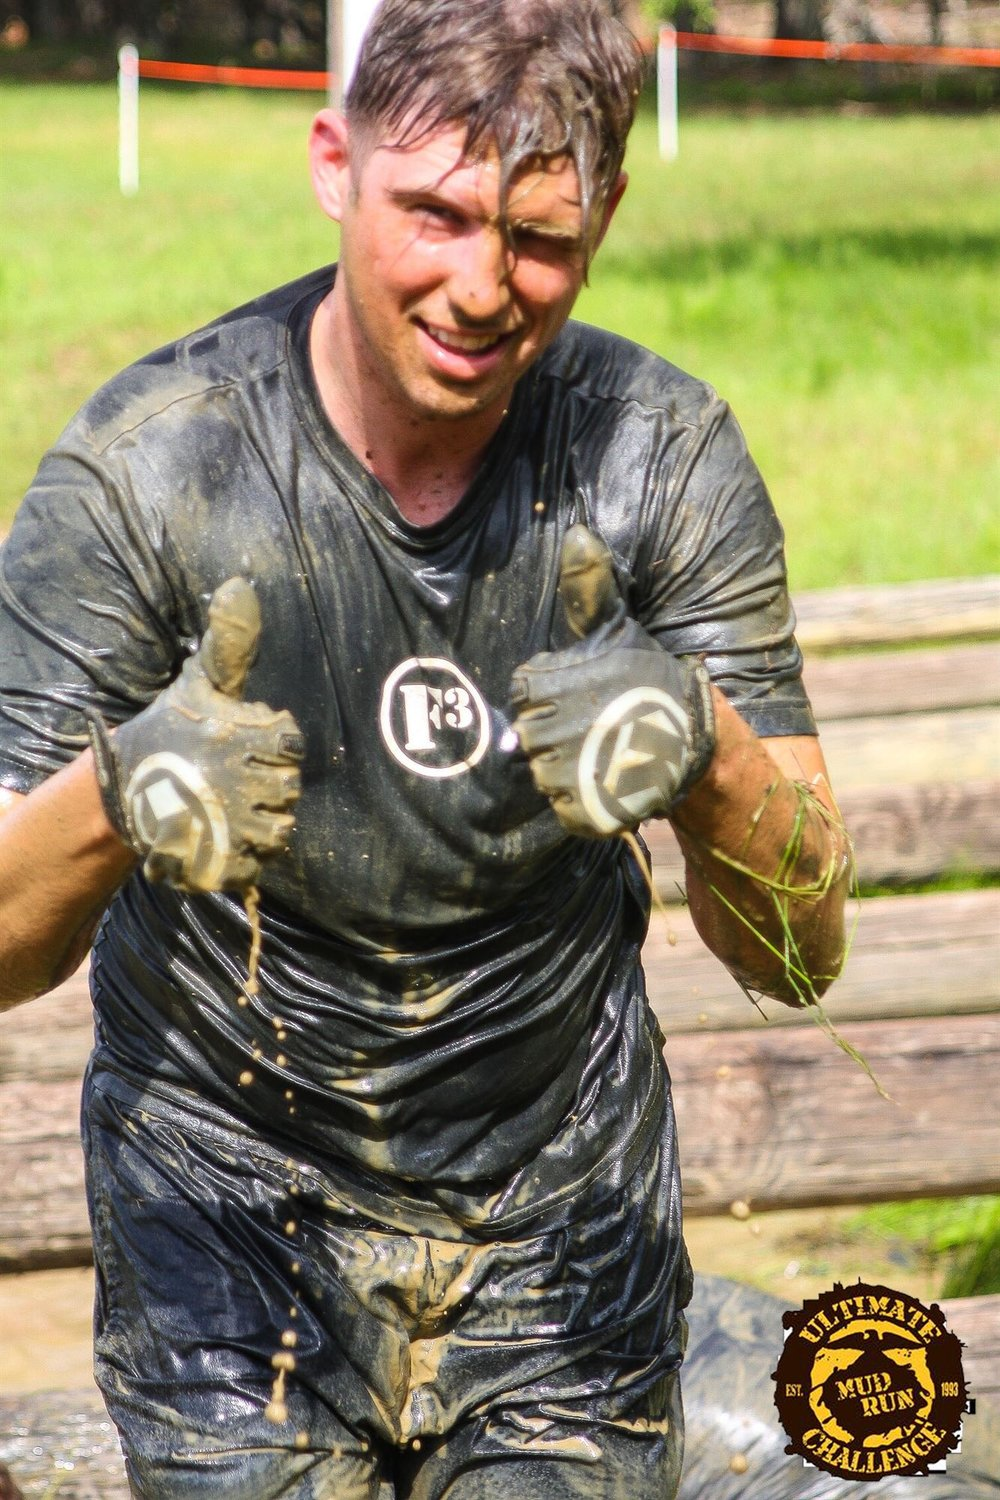 - Mud Run with F3 Brothers